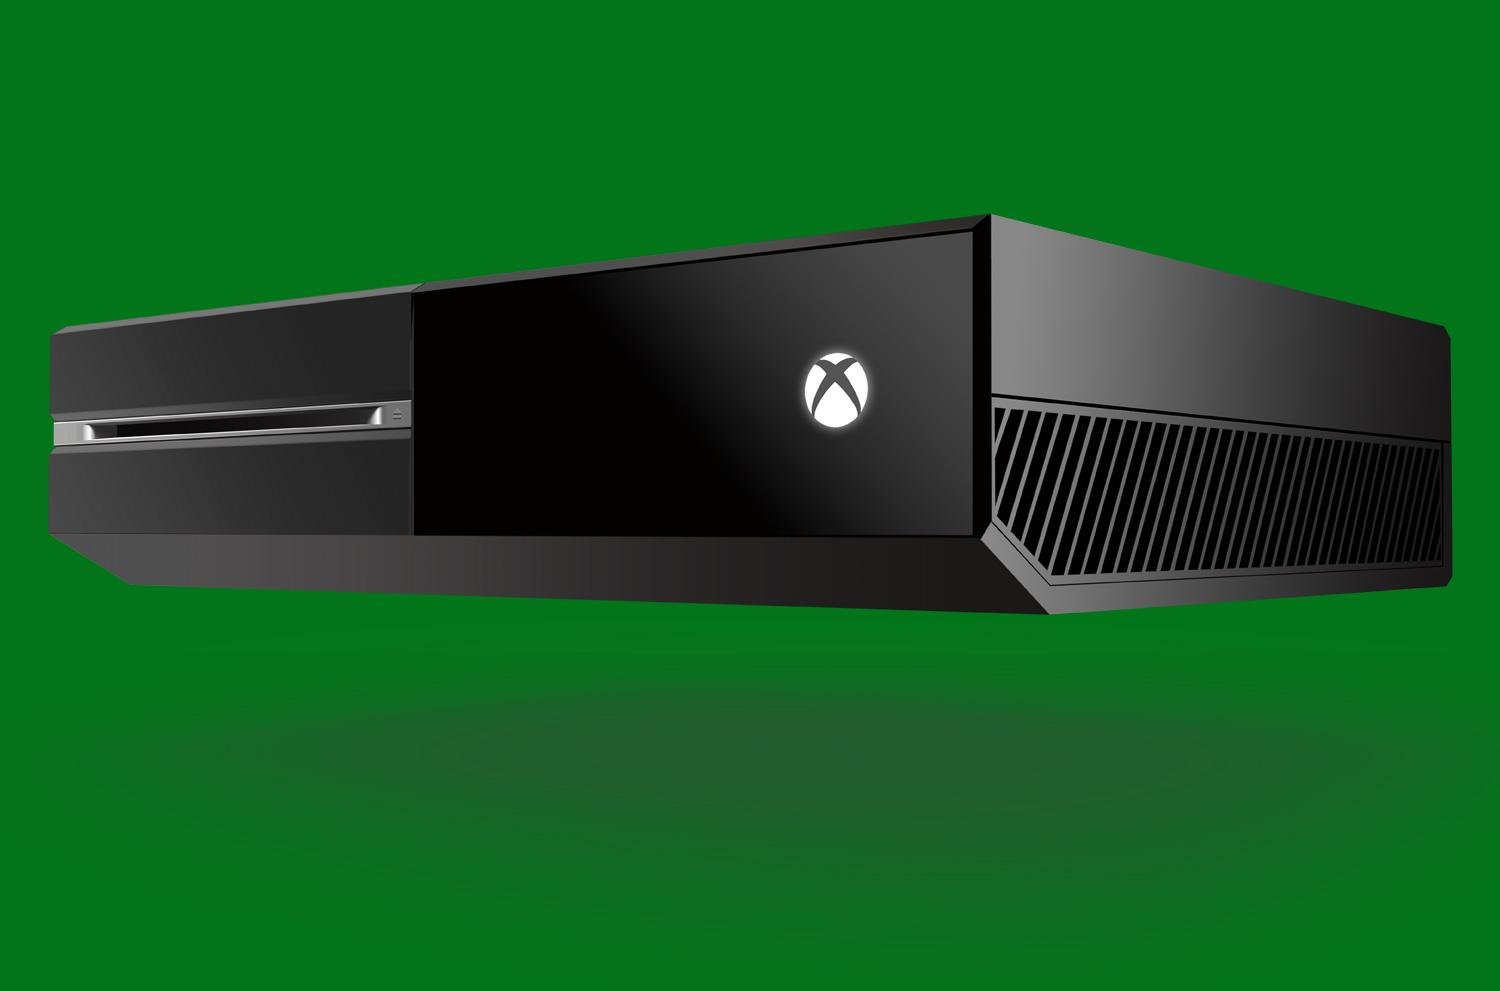 The Original Xbox One Discontinued by Microsoft